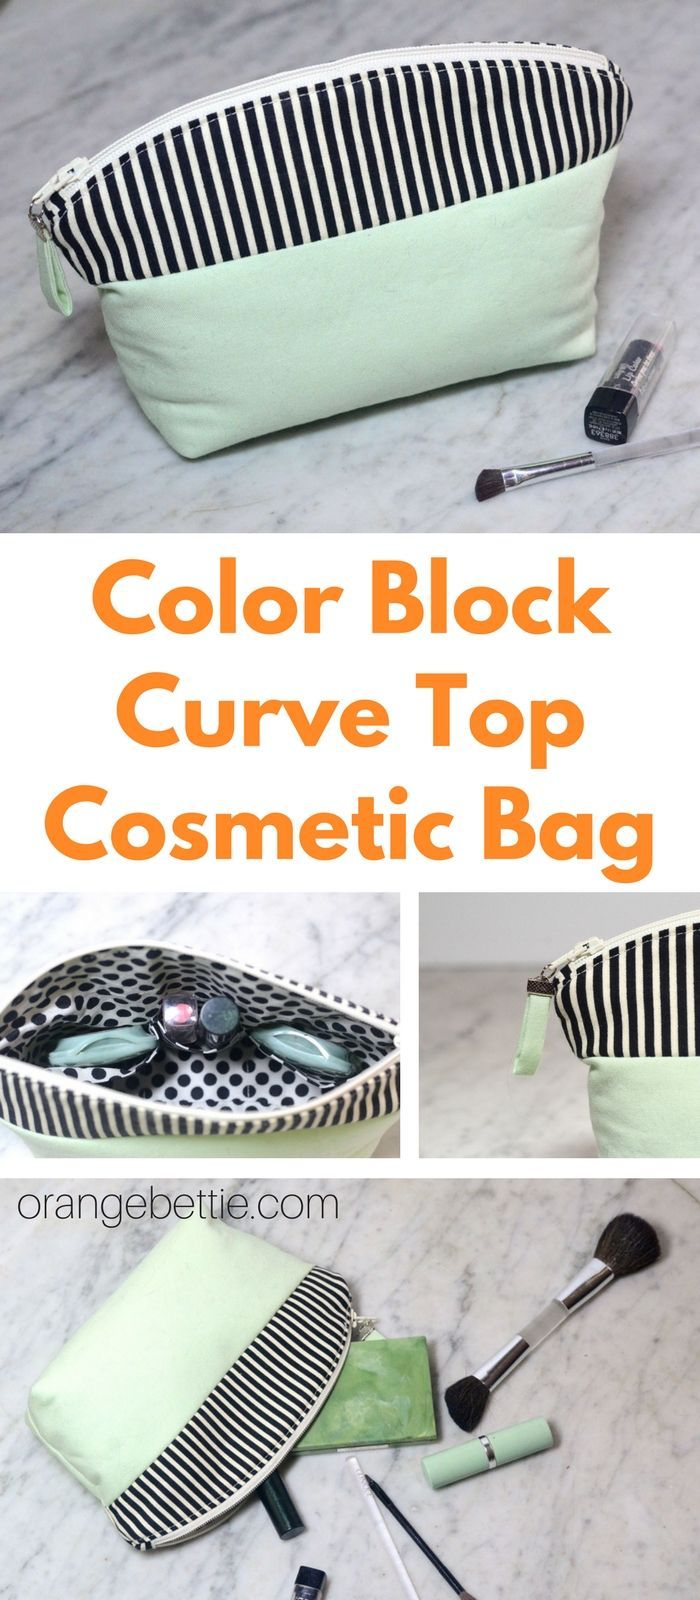 Color Block Curve Top Cosmetic Bag Tutorial - Orange Bettie